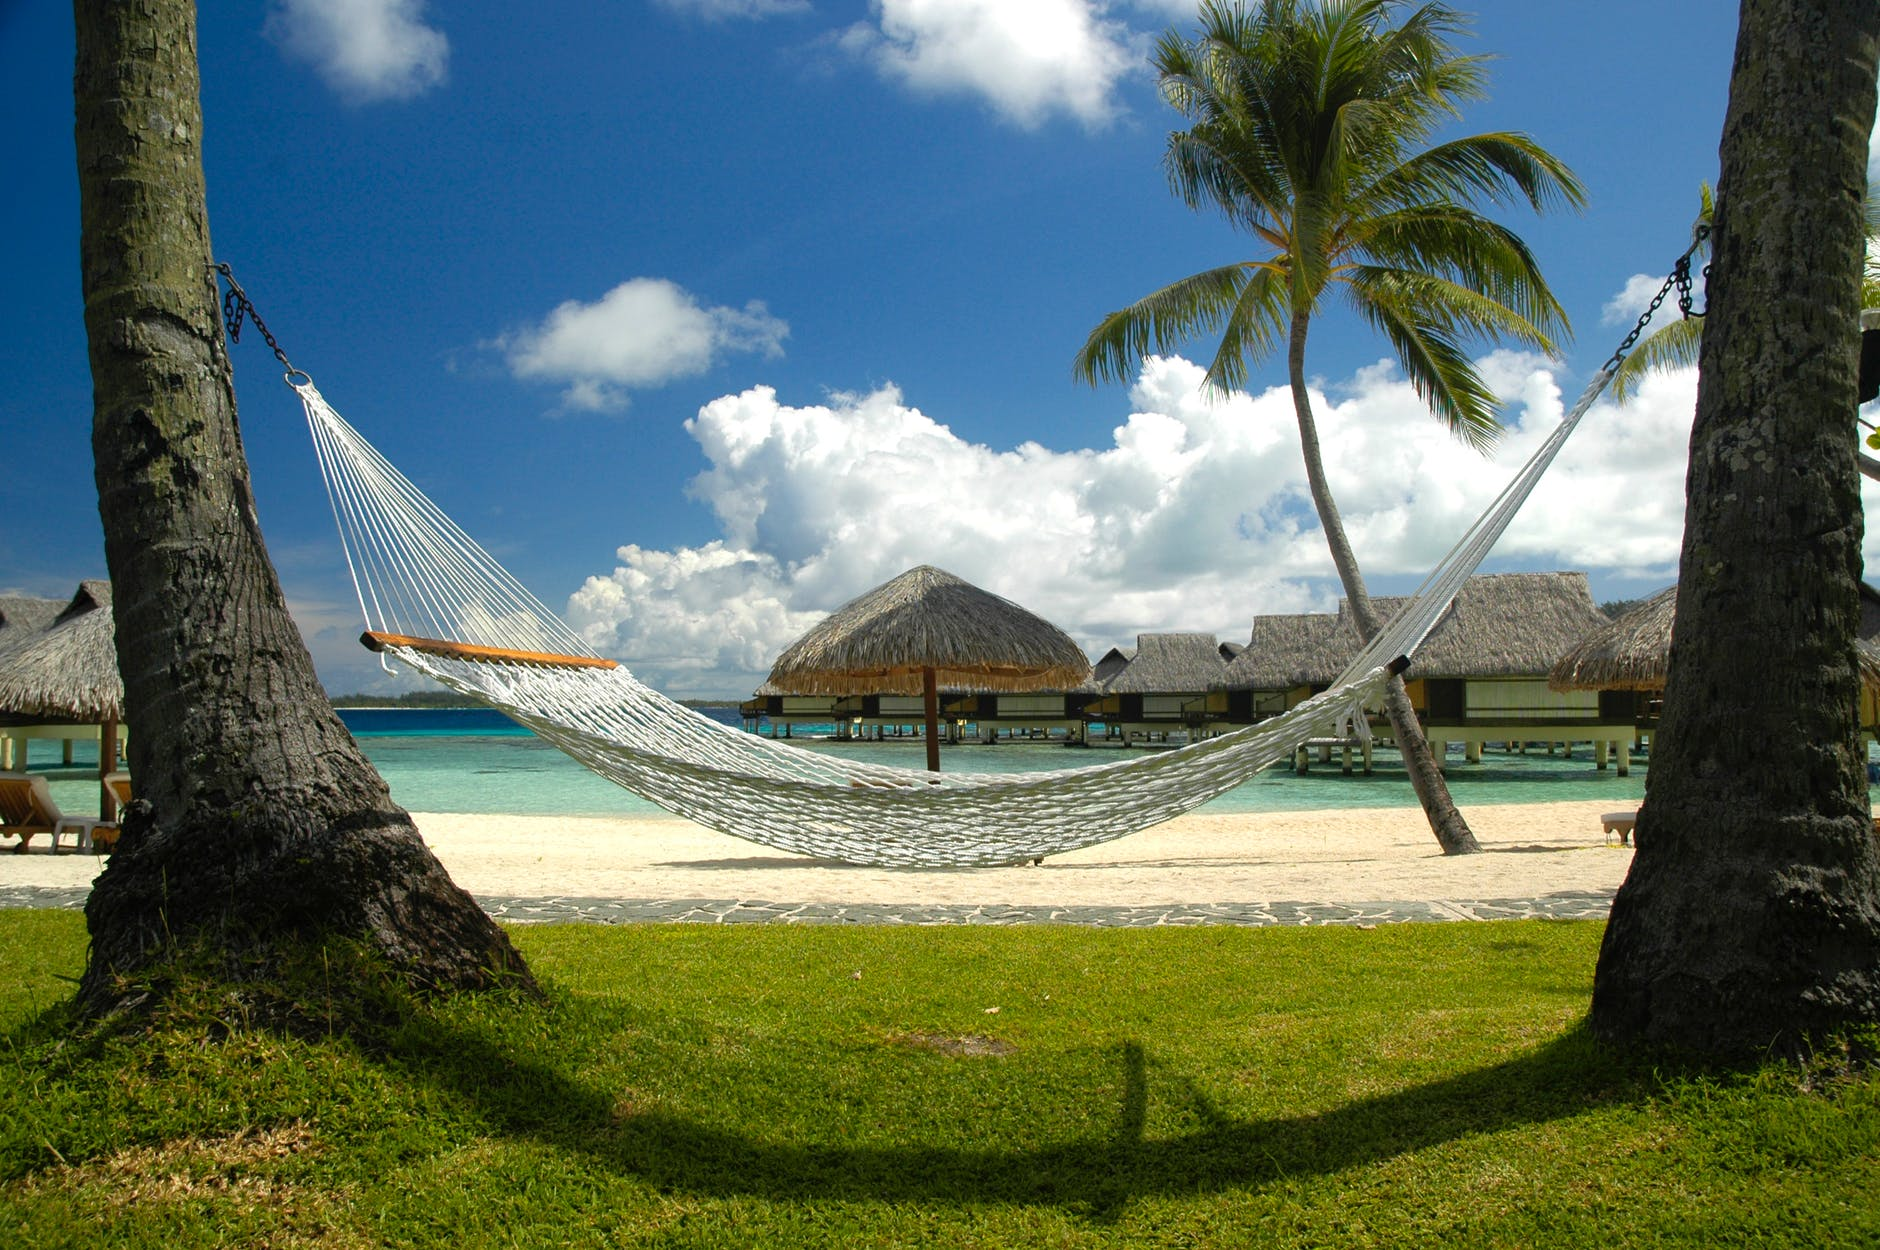 Successful Business Owner - Hammock in Bahamas